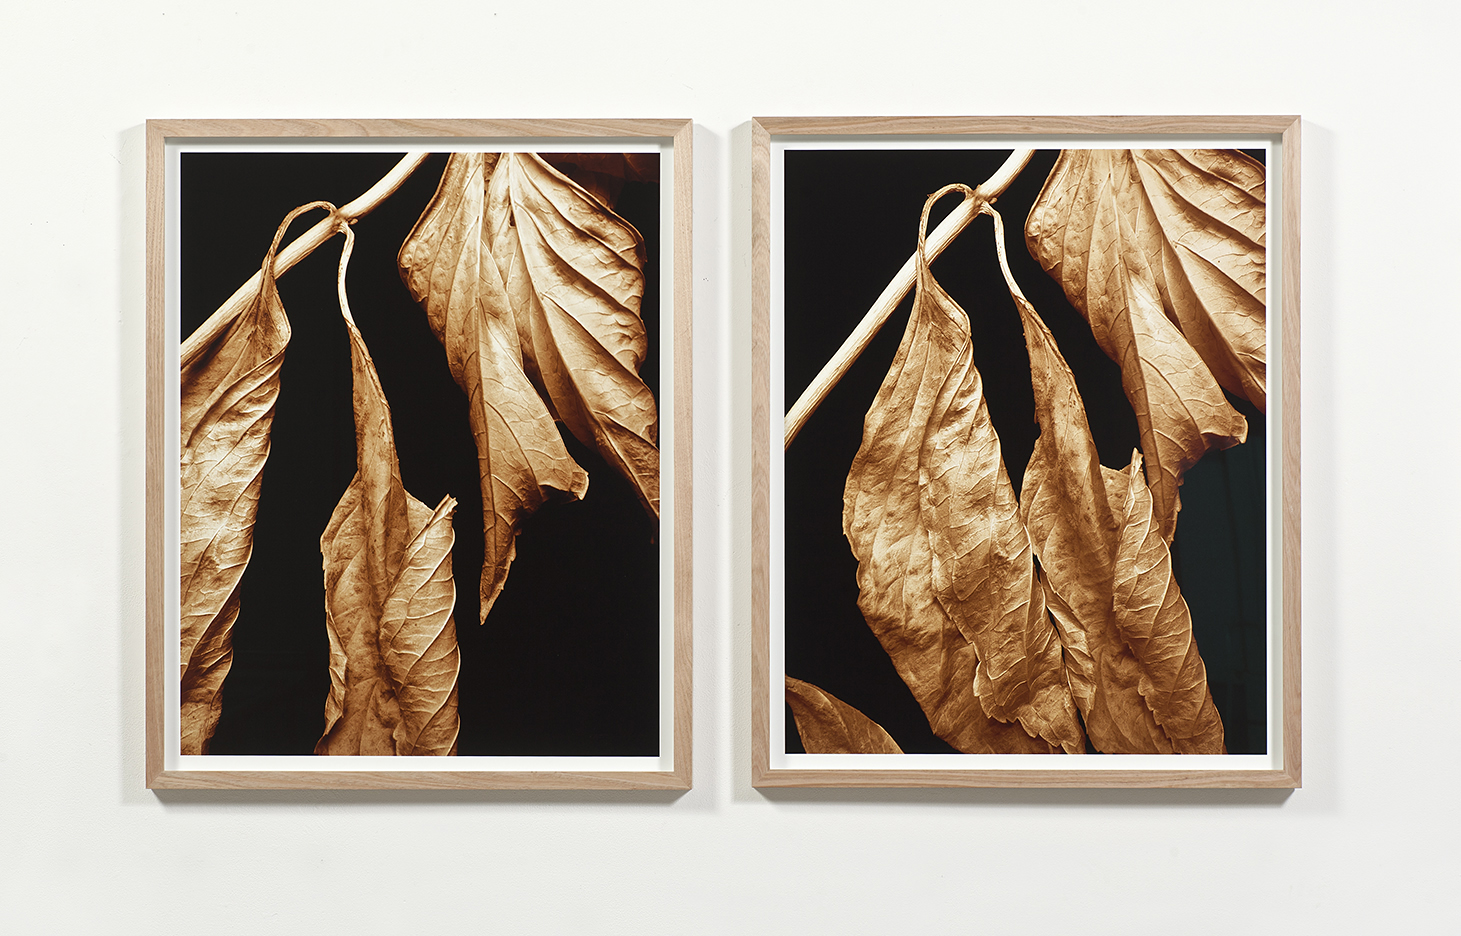 Touching The Earth    Shifted Vision: Leaves Die and Are Reborn 1.1 & 1.2  2017 gallery installation view 111.5cm x 196cm